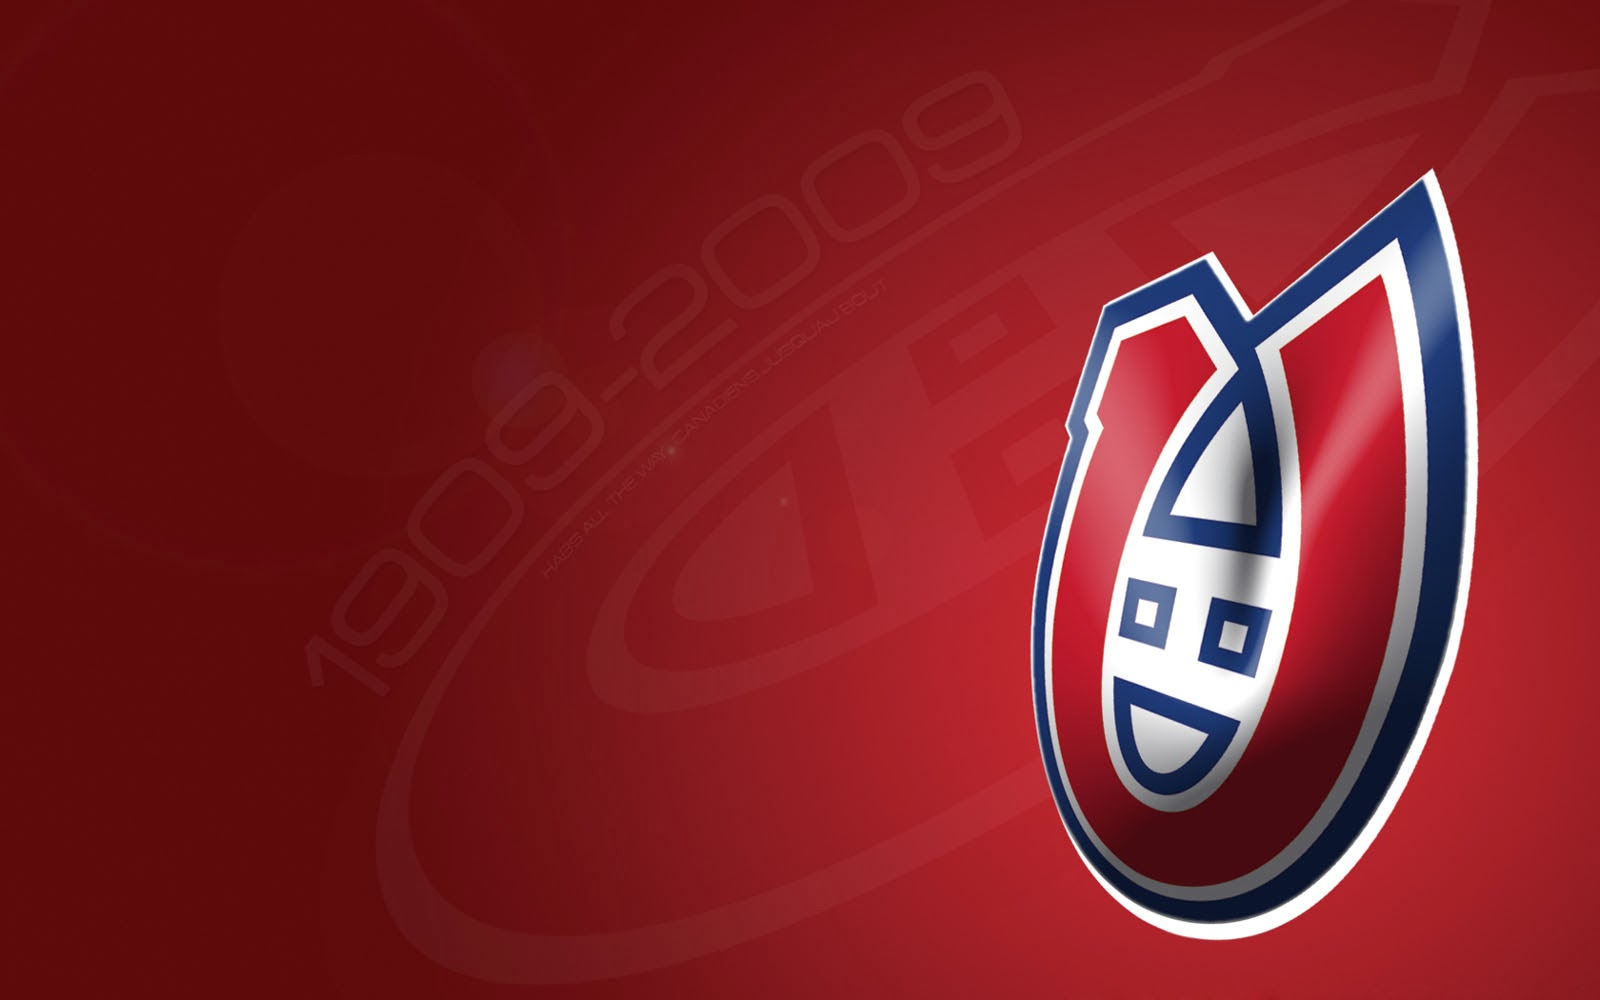 Wallpapers Montreal Canadiens Wallpapers